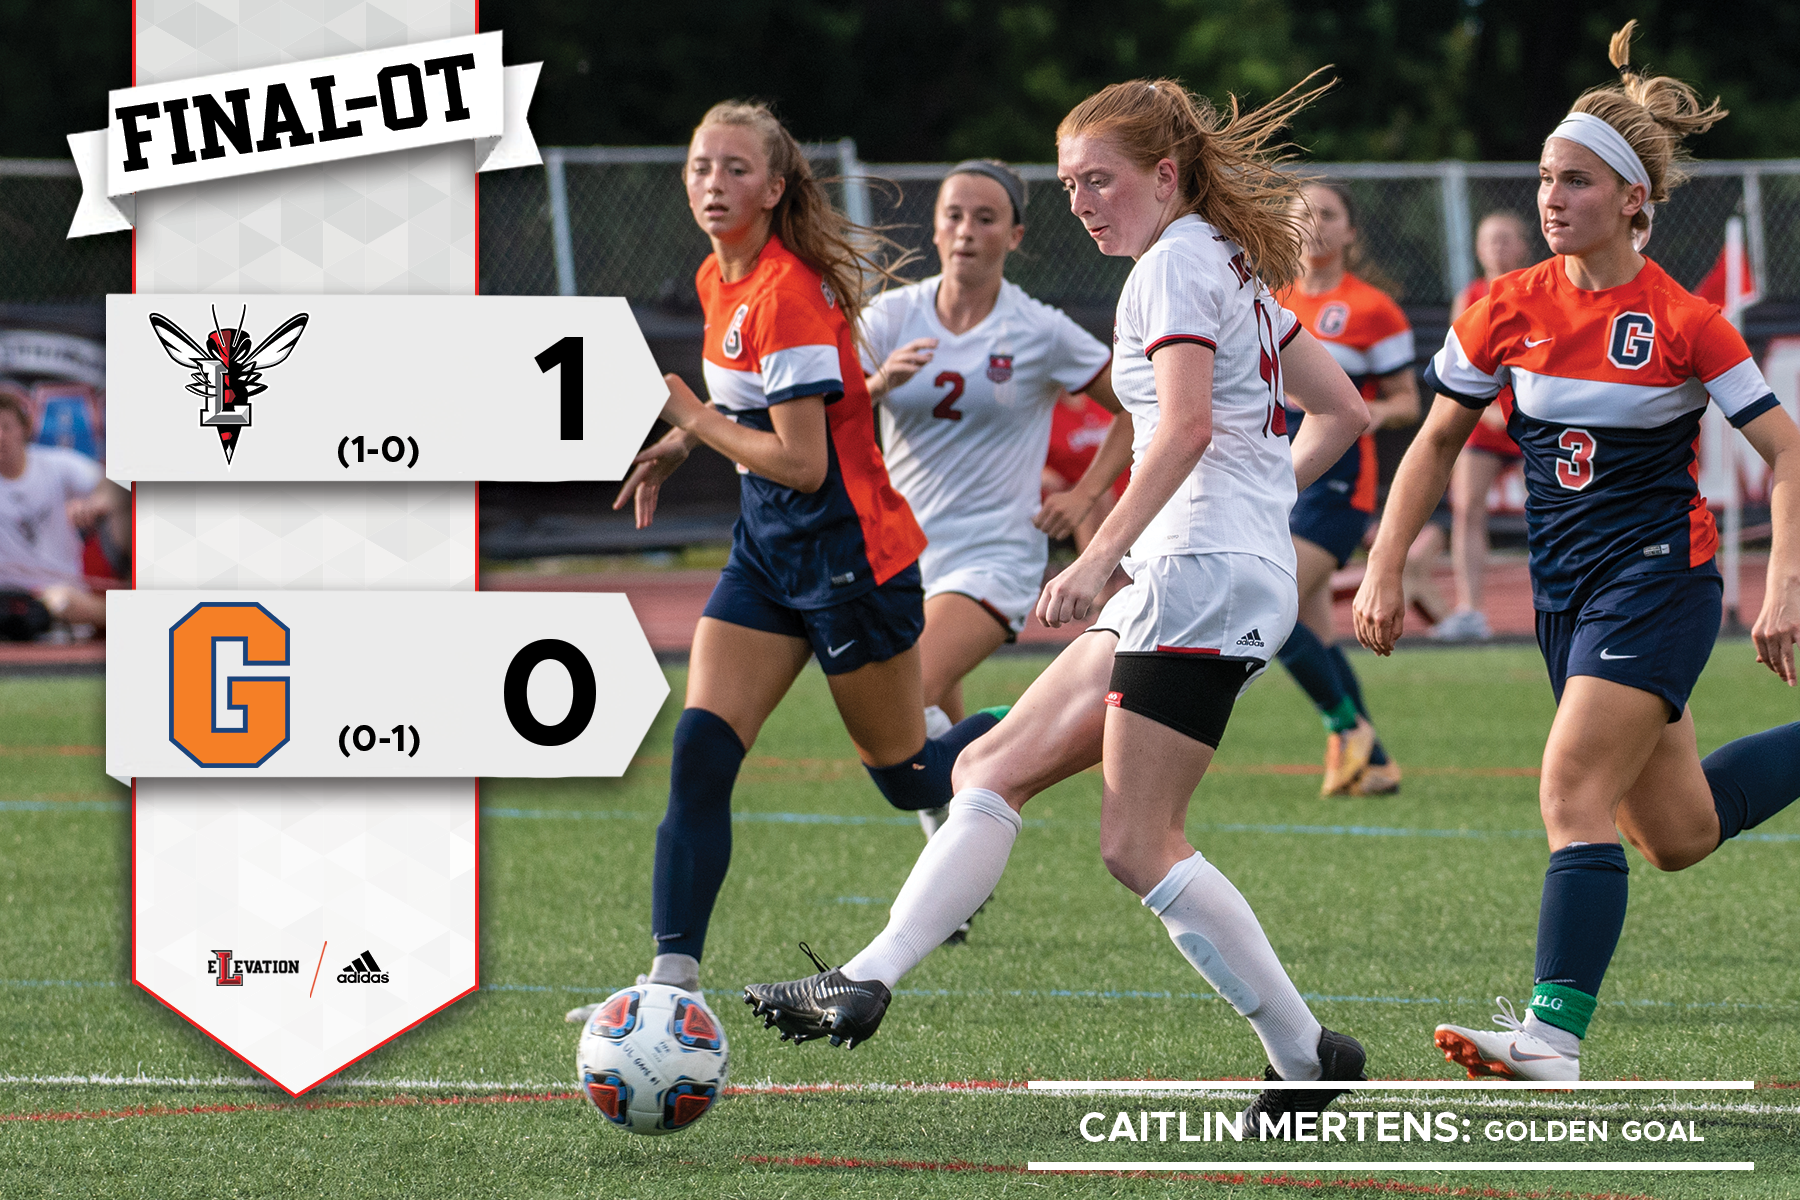 Catilin Mertens kicks the ball. Graphic showing final score and Lynchburg and Gettysburg logos.